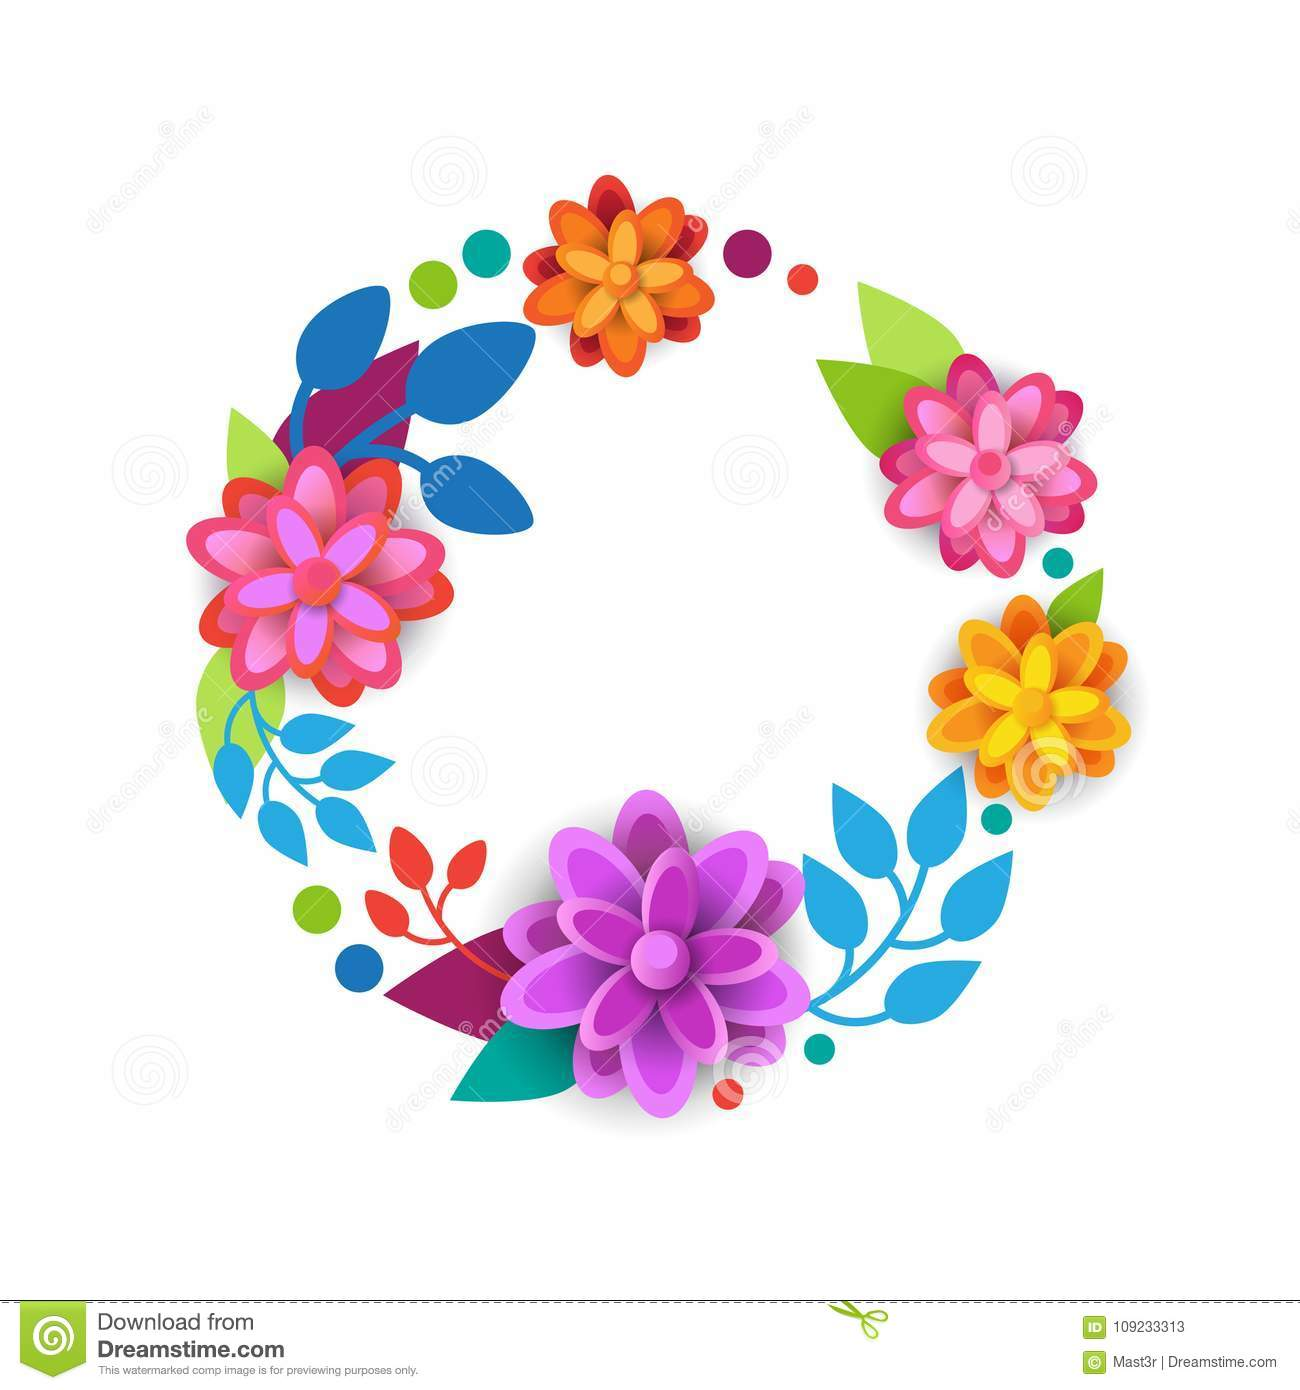 Floral Wreath Spring Graphic Design Element With Colorful Flowers On